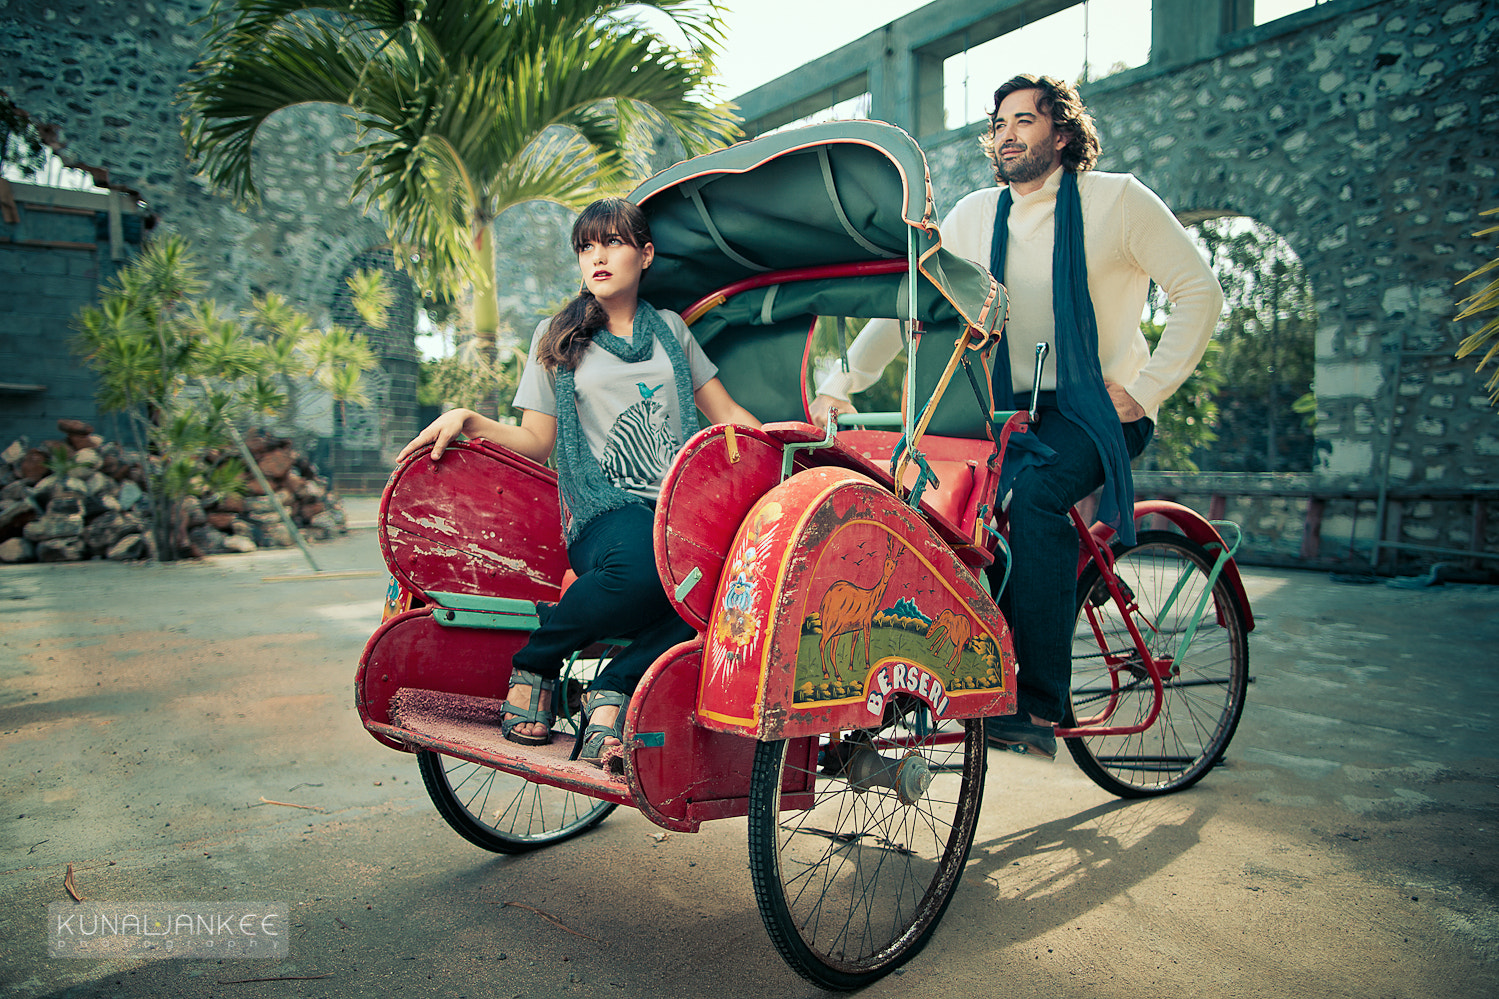 Photograph Tricycle ride by Kunal Jankee on 500px